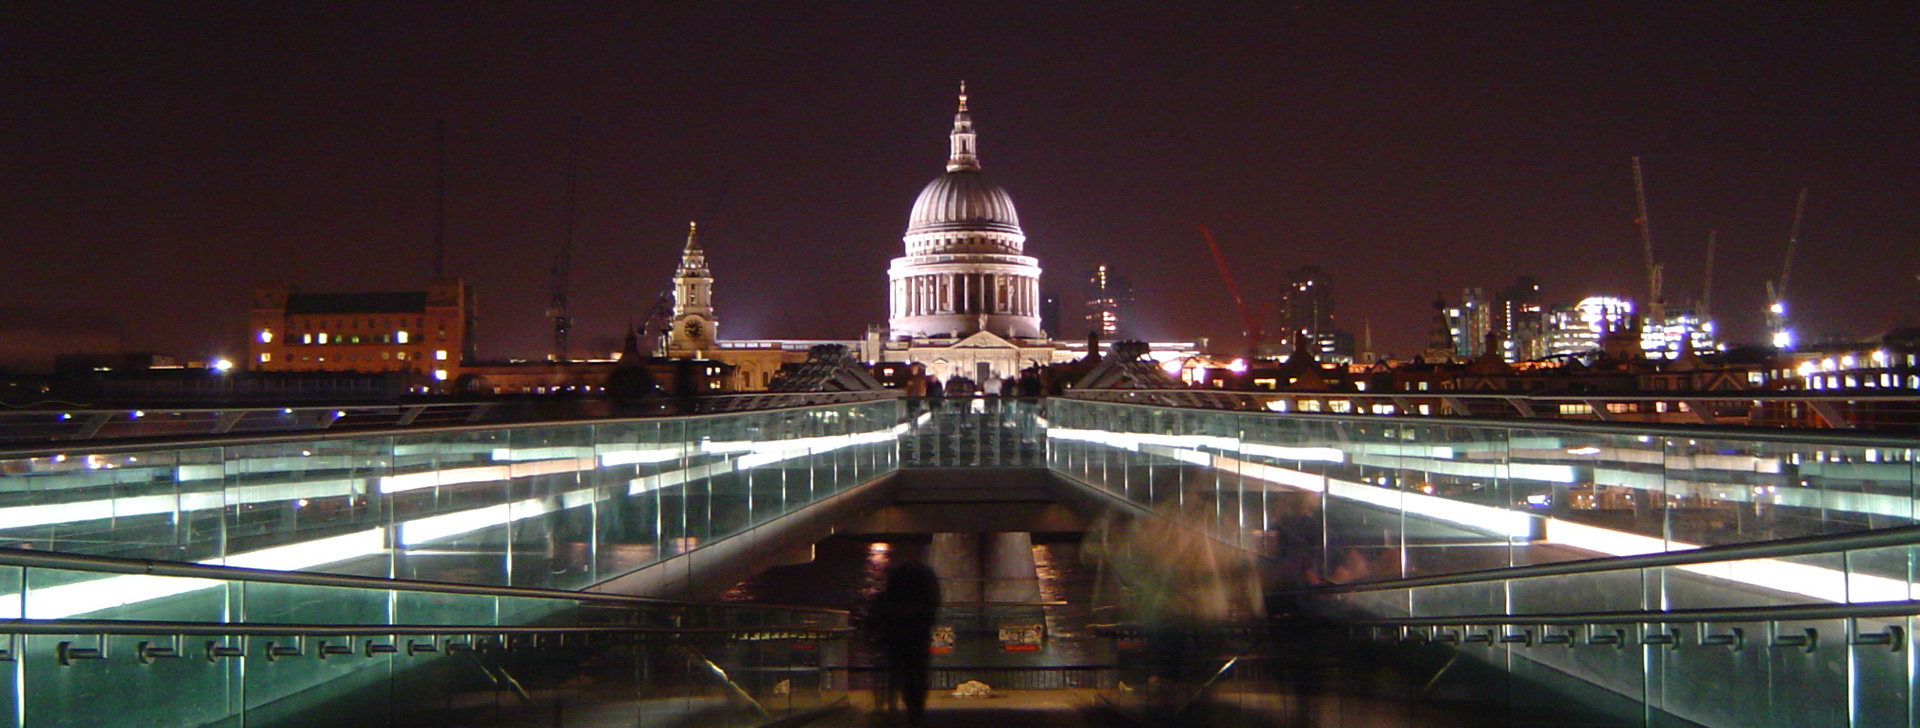 St_Pauls_and_Millennium_Bridge_at_nightv2